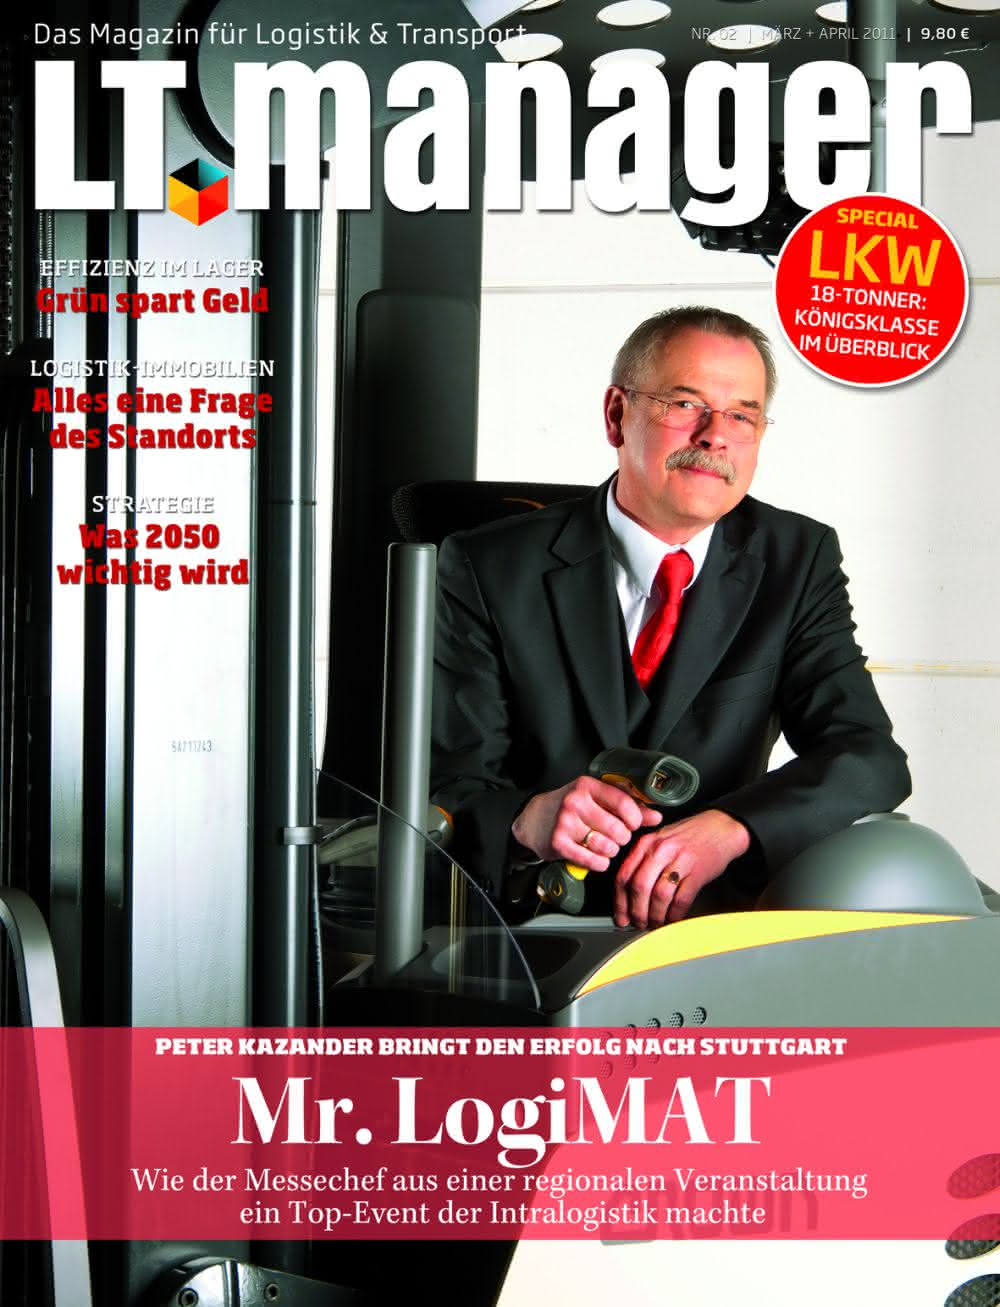 Intralogistik: LogiMAT-Macher jubeln